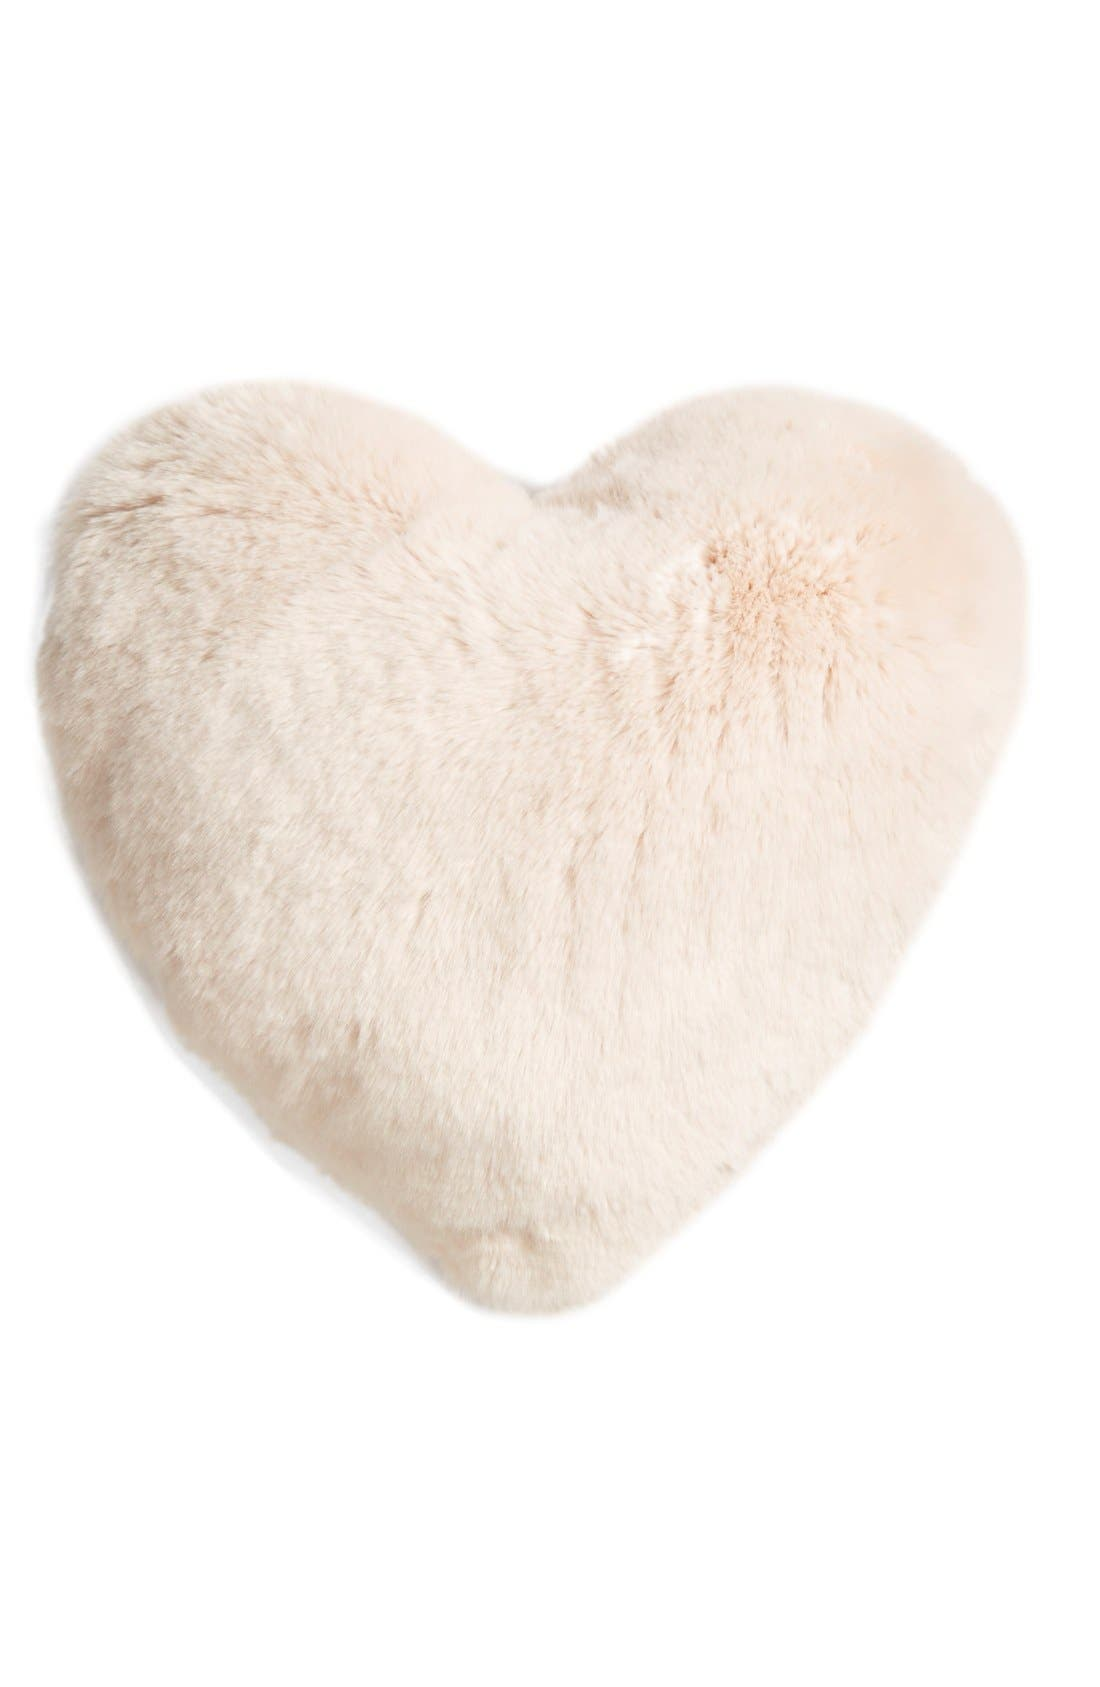 NORDSTROM AT HOME, 'Cuddle Up' Heart Accent Pillow, Main thumbnail 1, color, 650